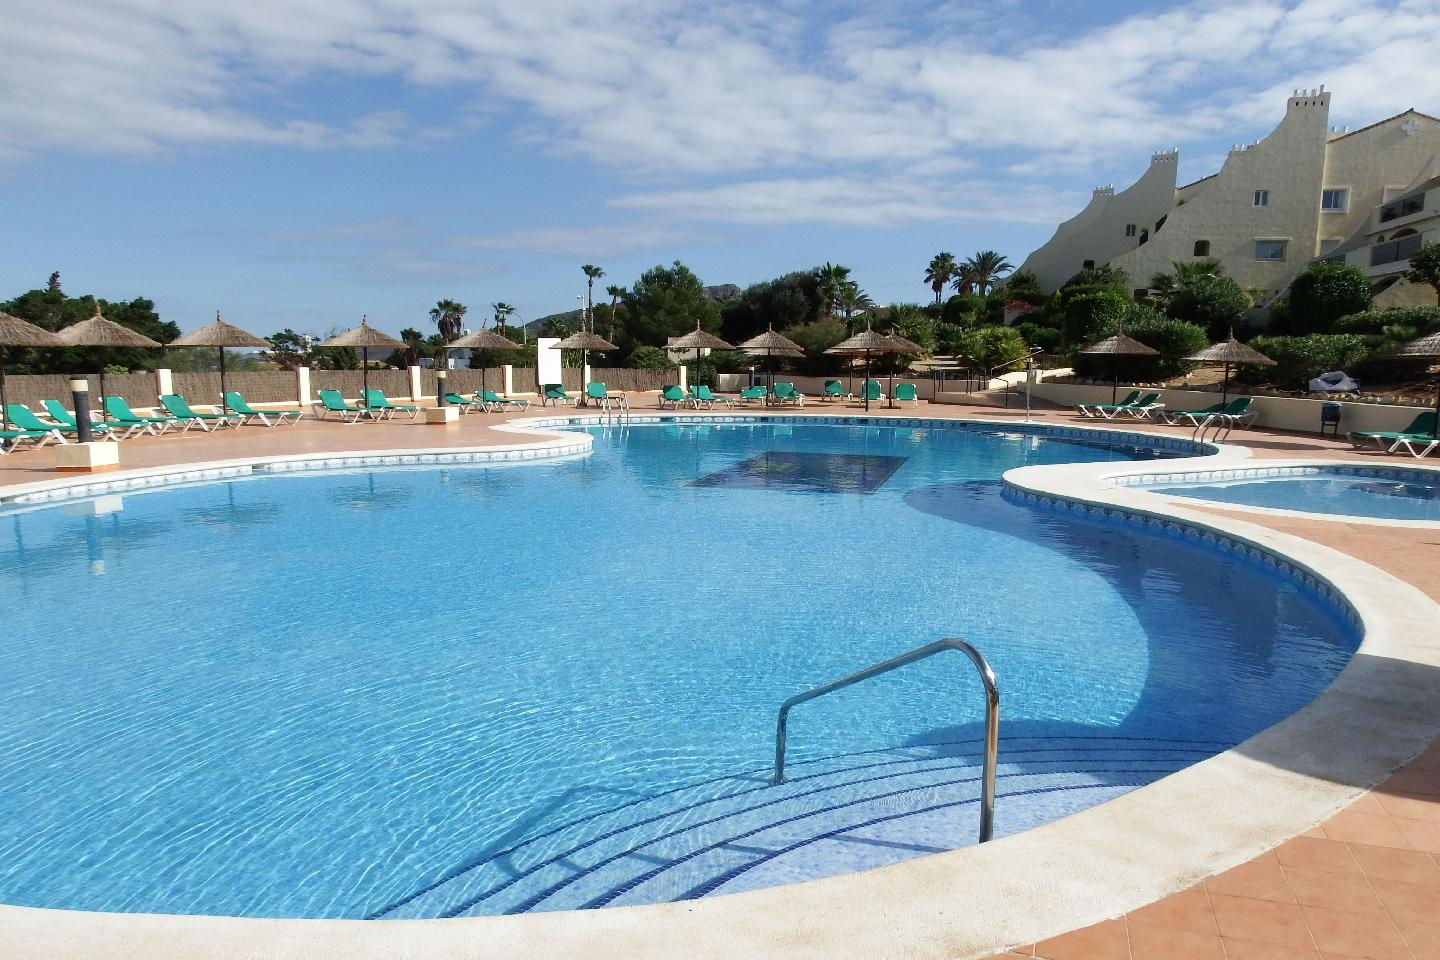 La Manga Club Resort - Los Olivos 75 3 Bedrooms, for rent